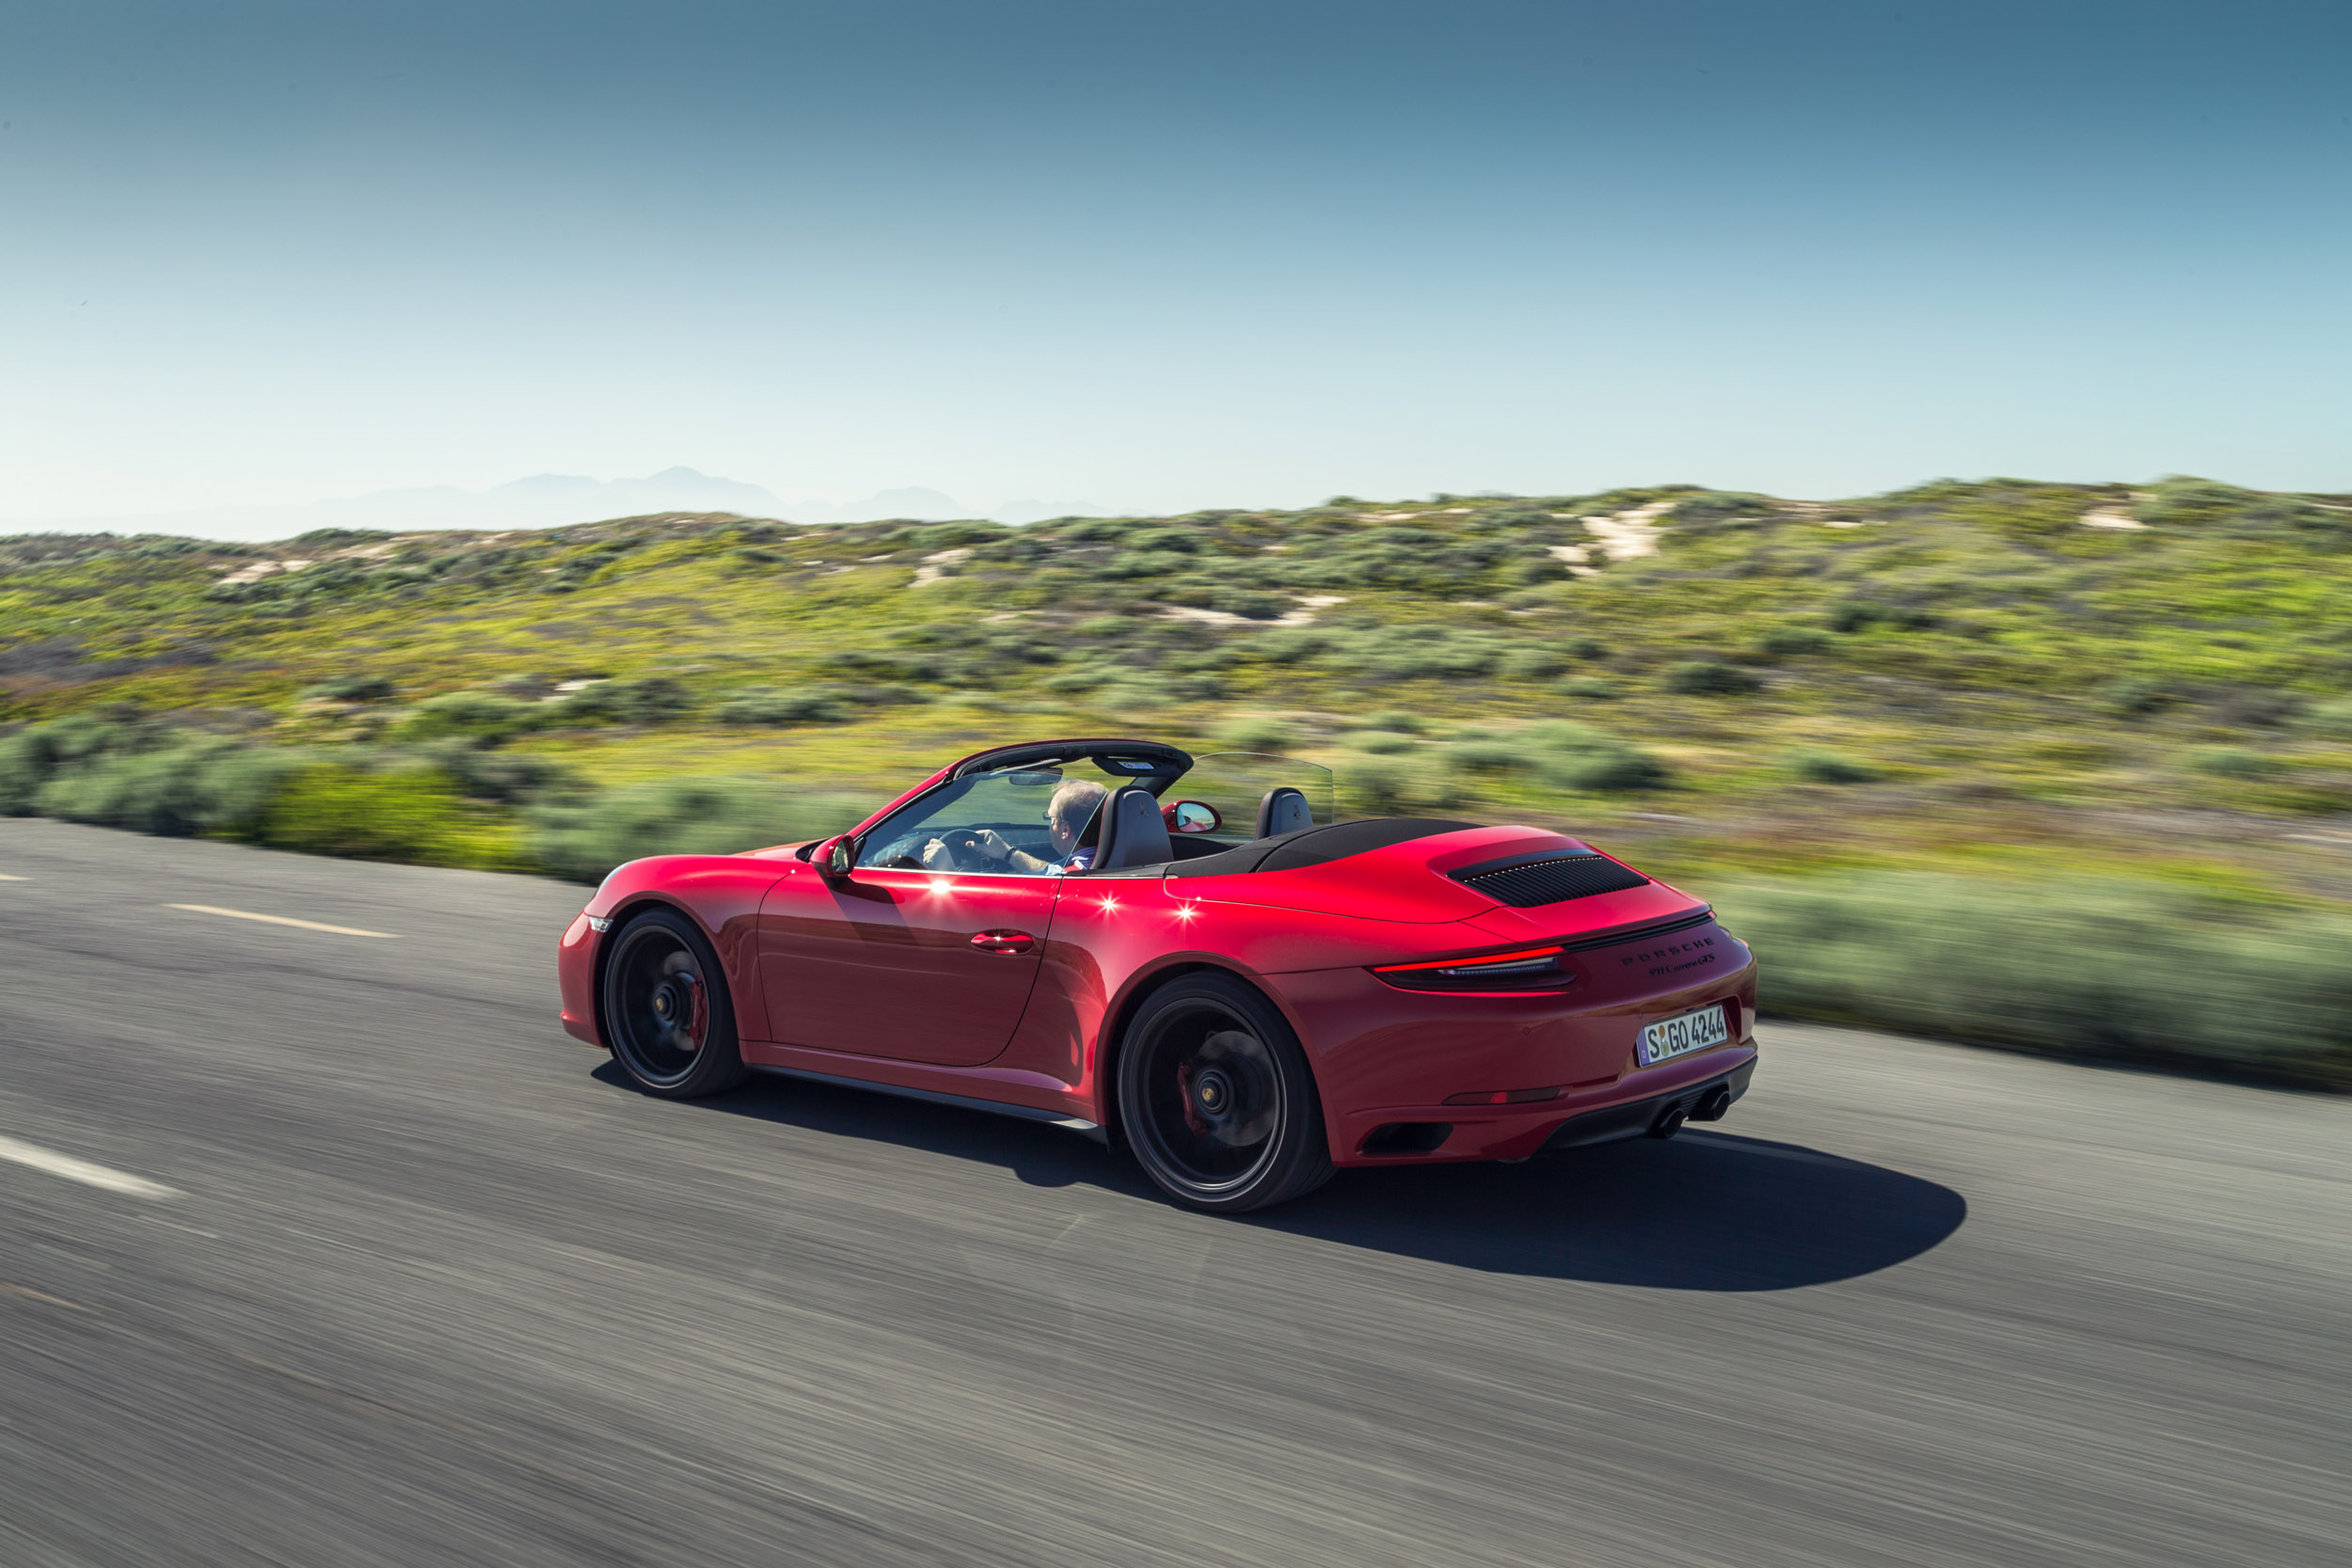 Porsche 911 Carrera 4 Gts Cabriolet Review Prices Specs And 0 60 Time Evo